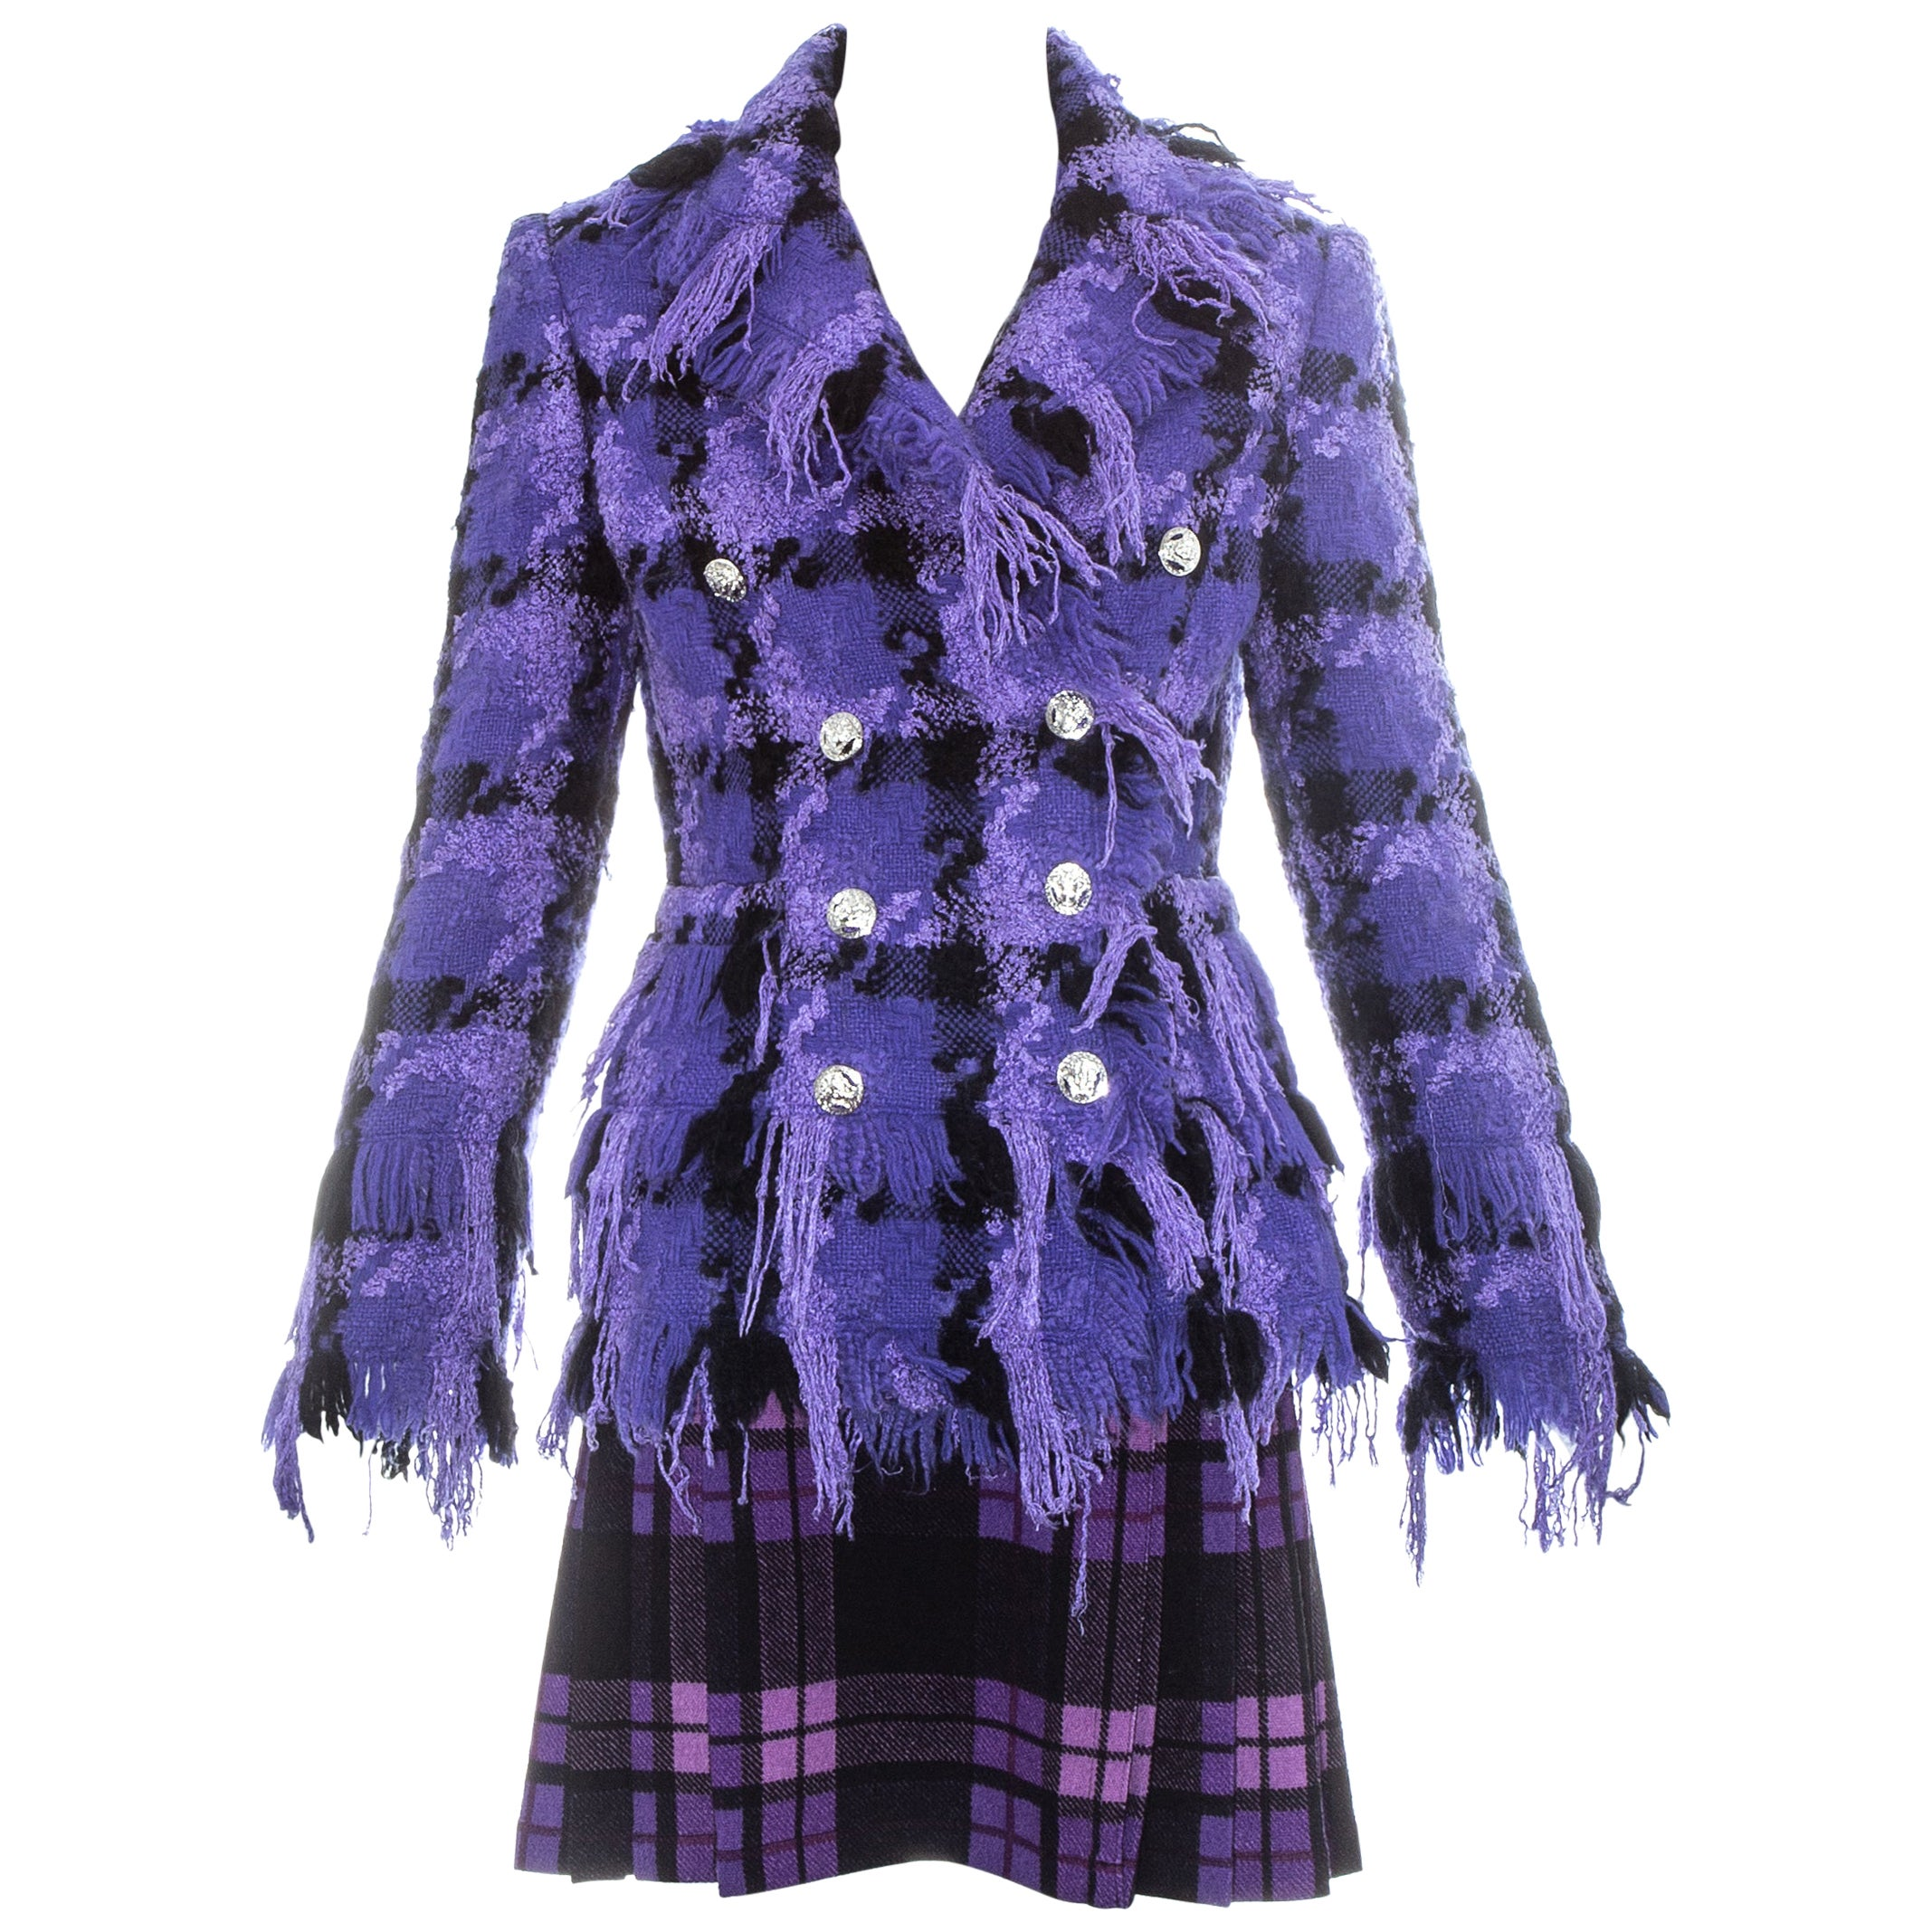 Gianni Versace purple and black checked wool skirt suit, fw 2004